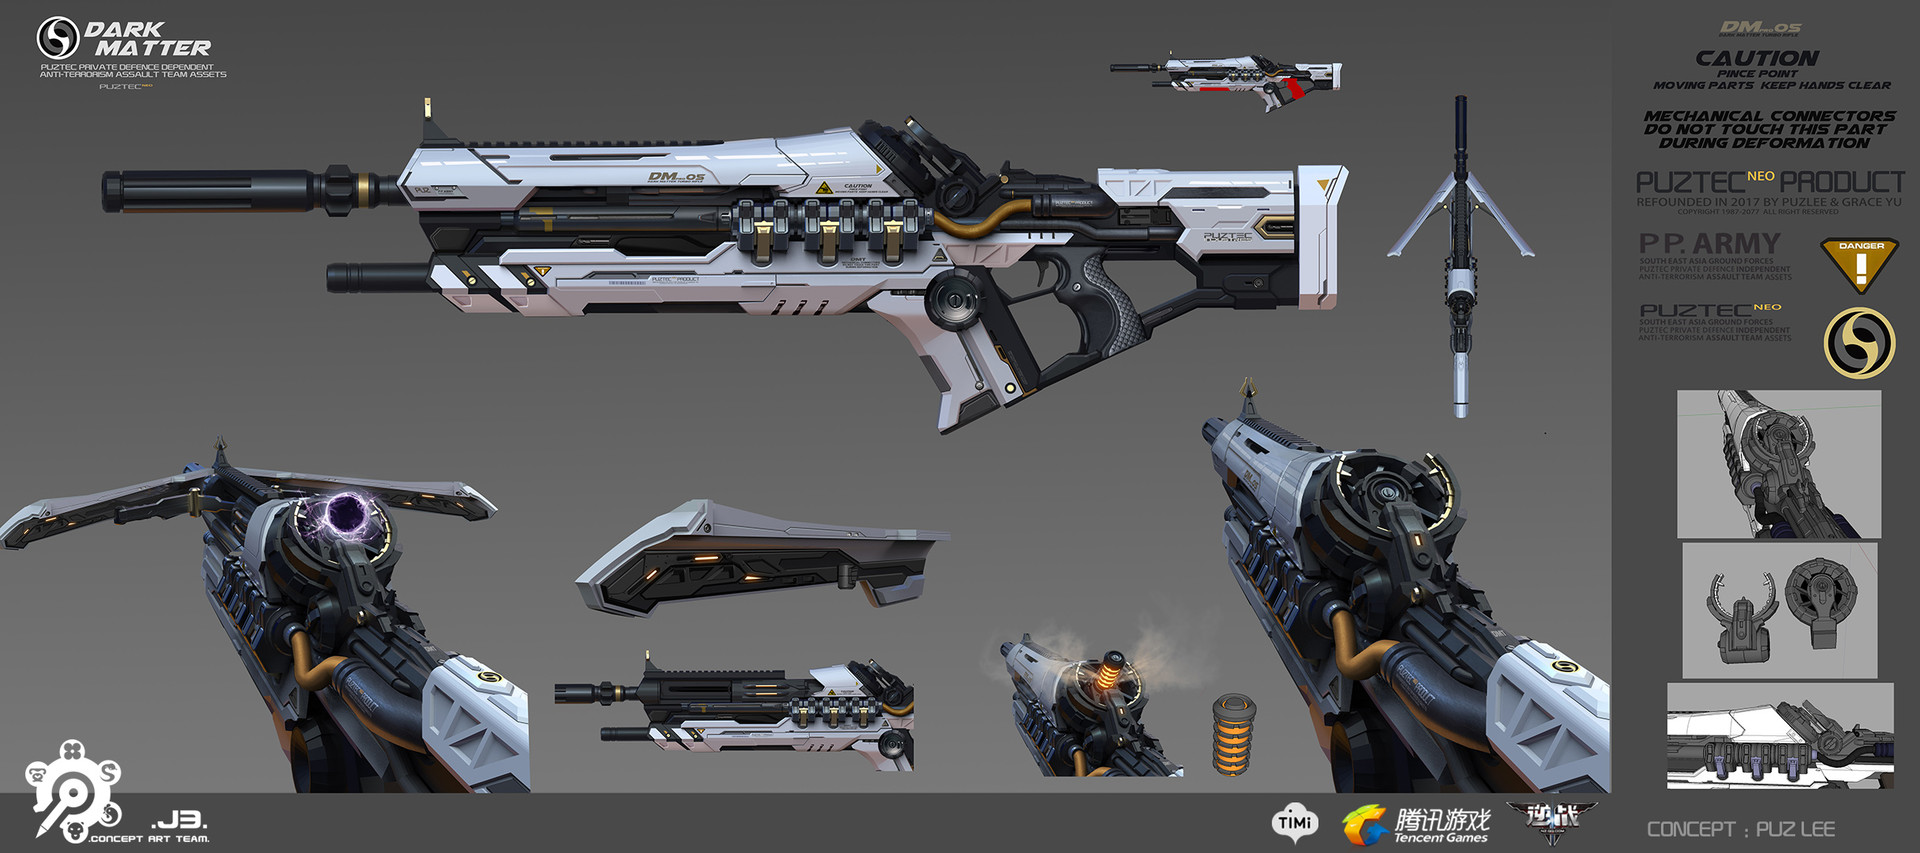 Puz lee dark matter rifle